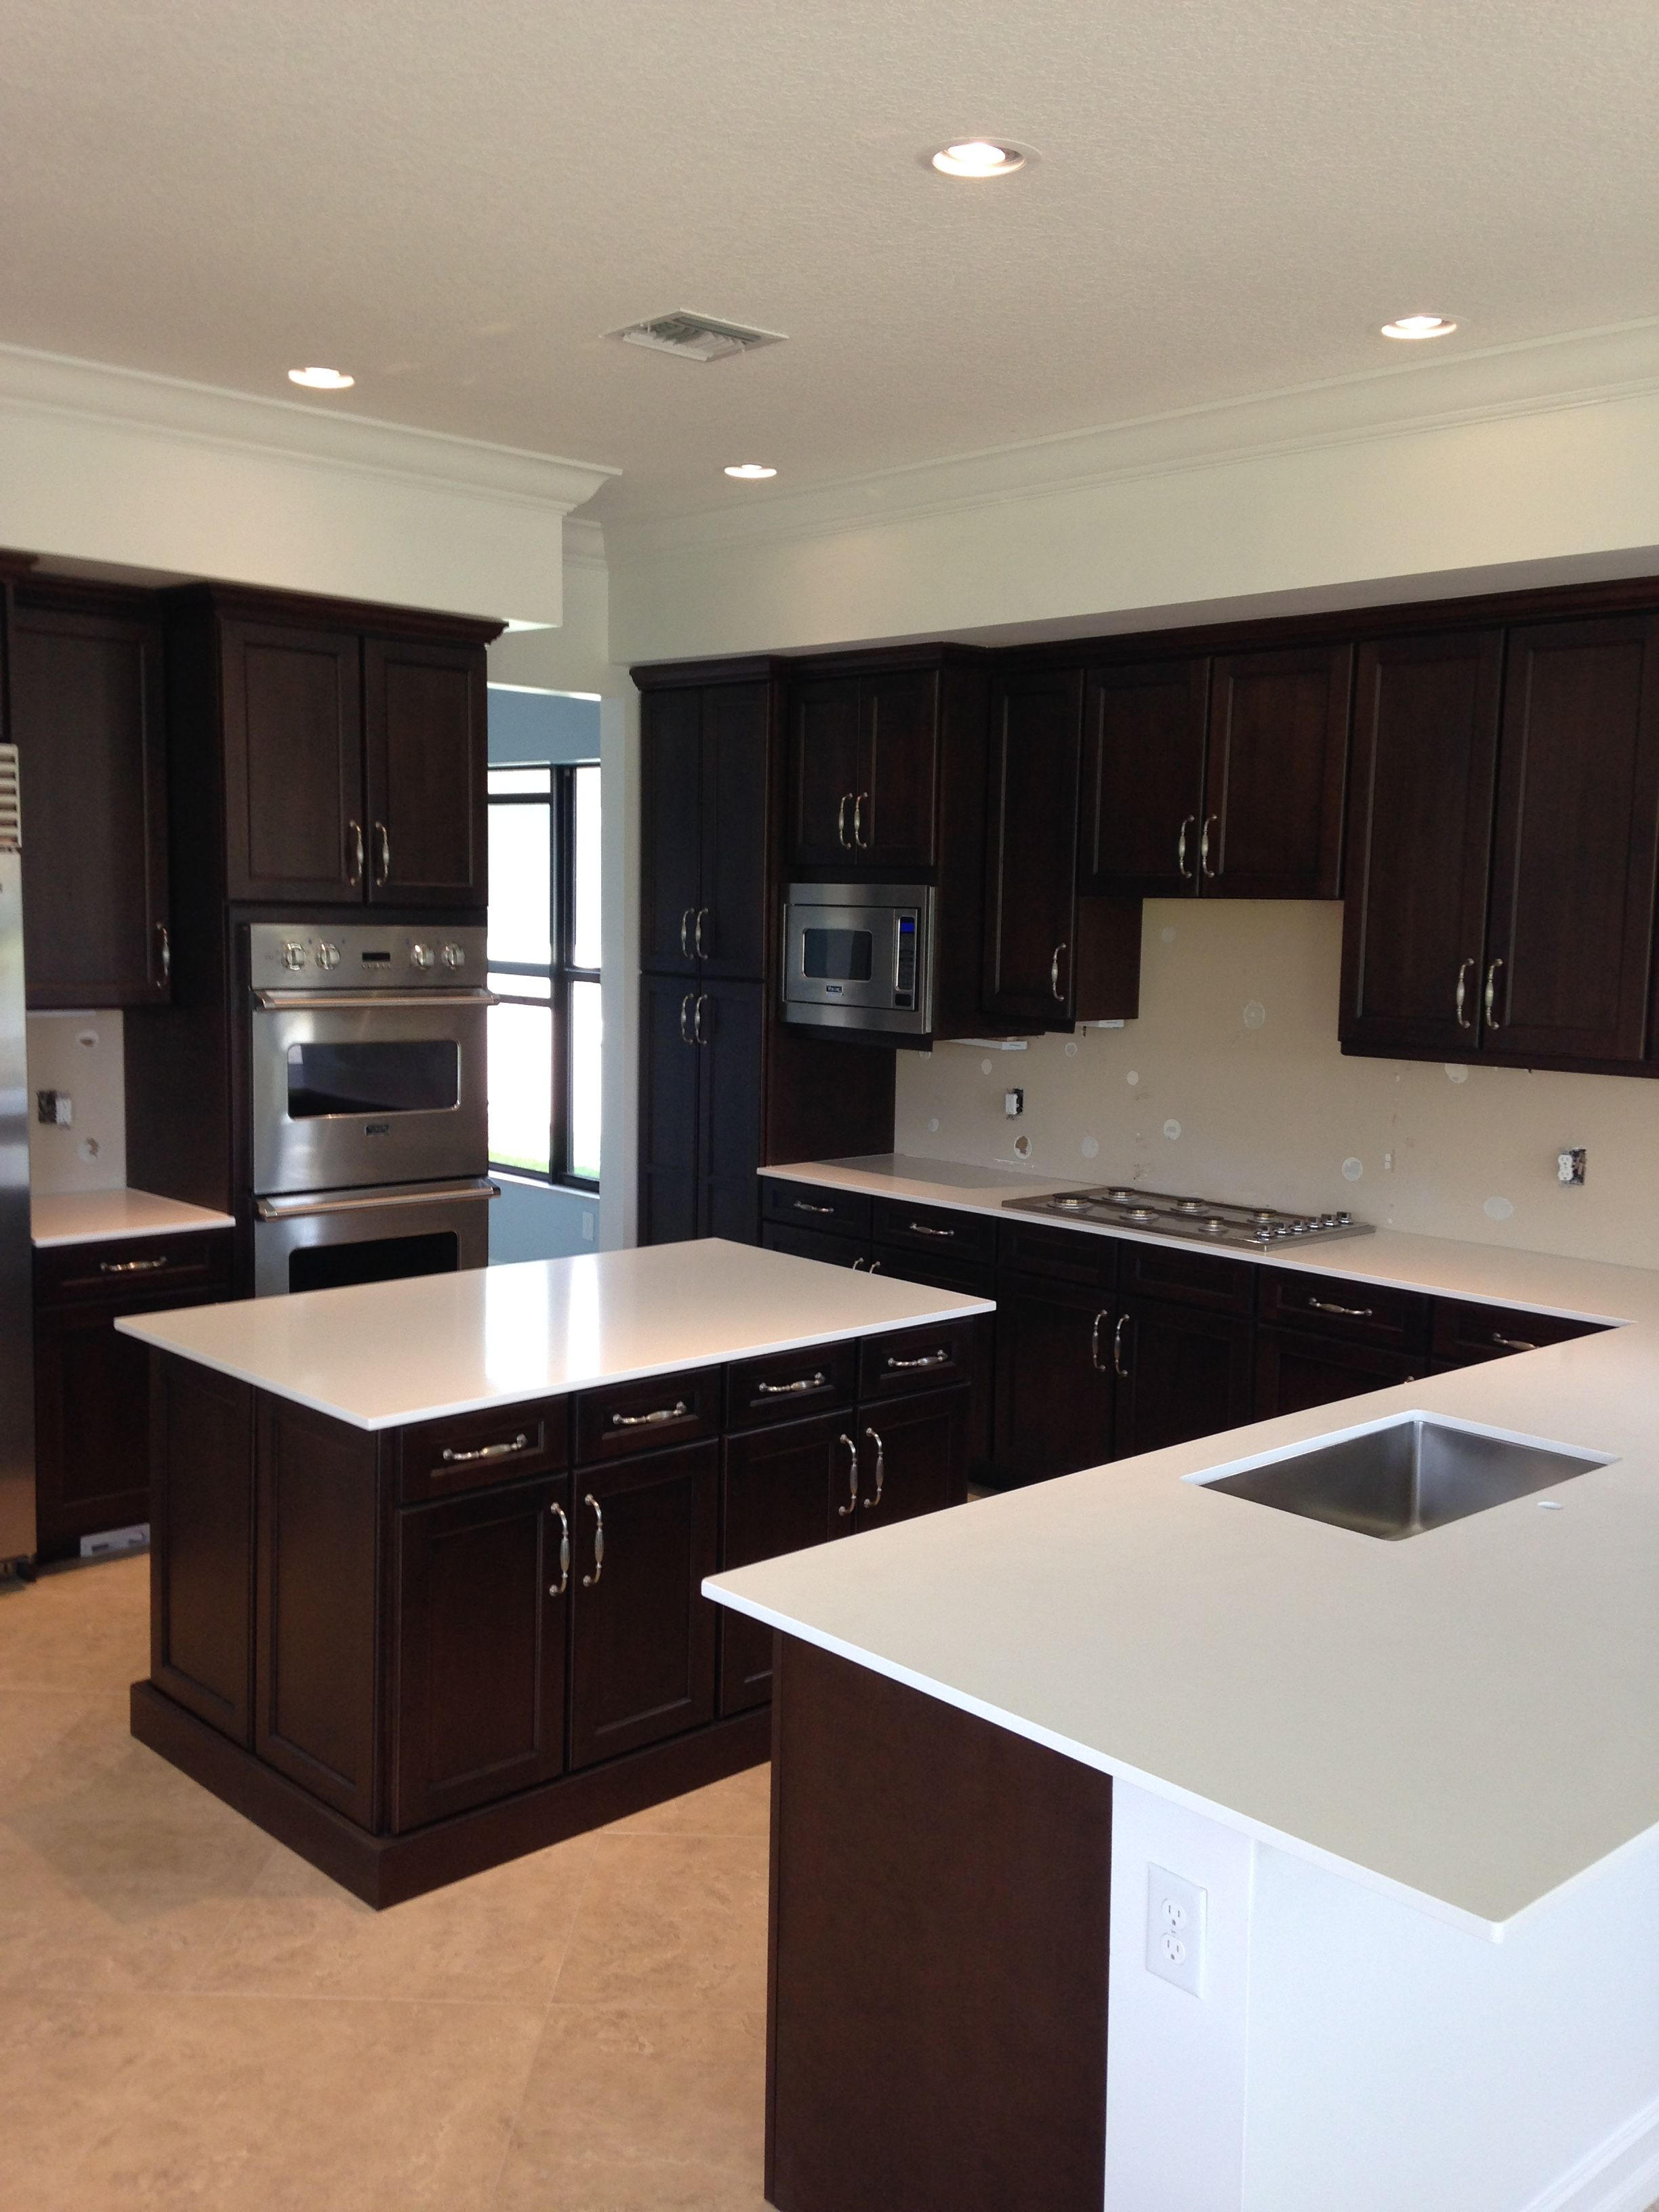 White Quartz countertops and brown dark http